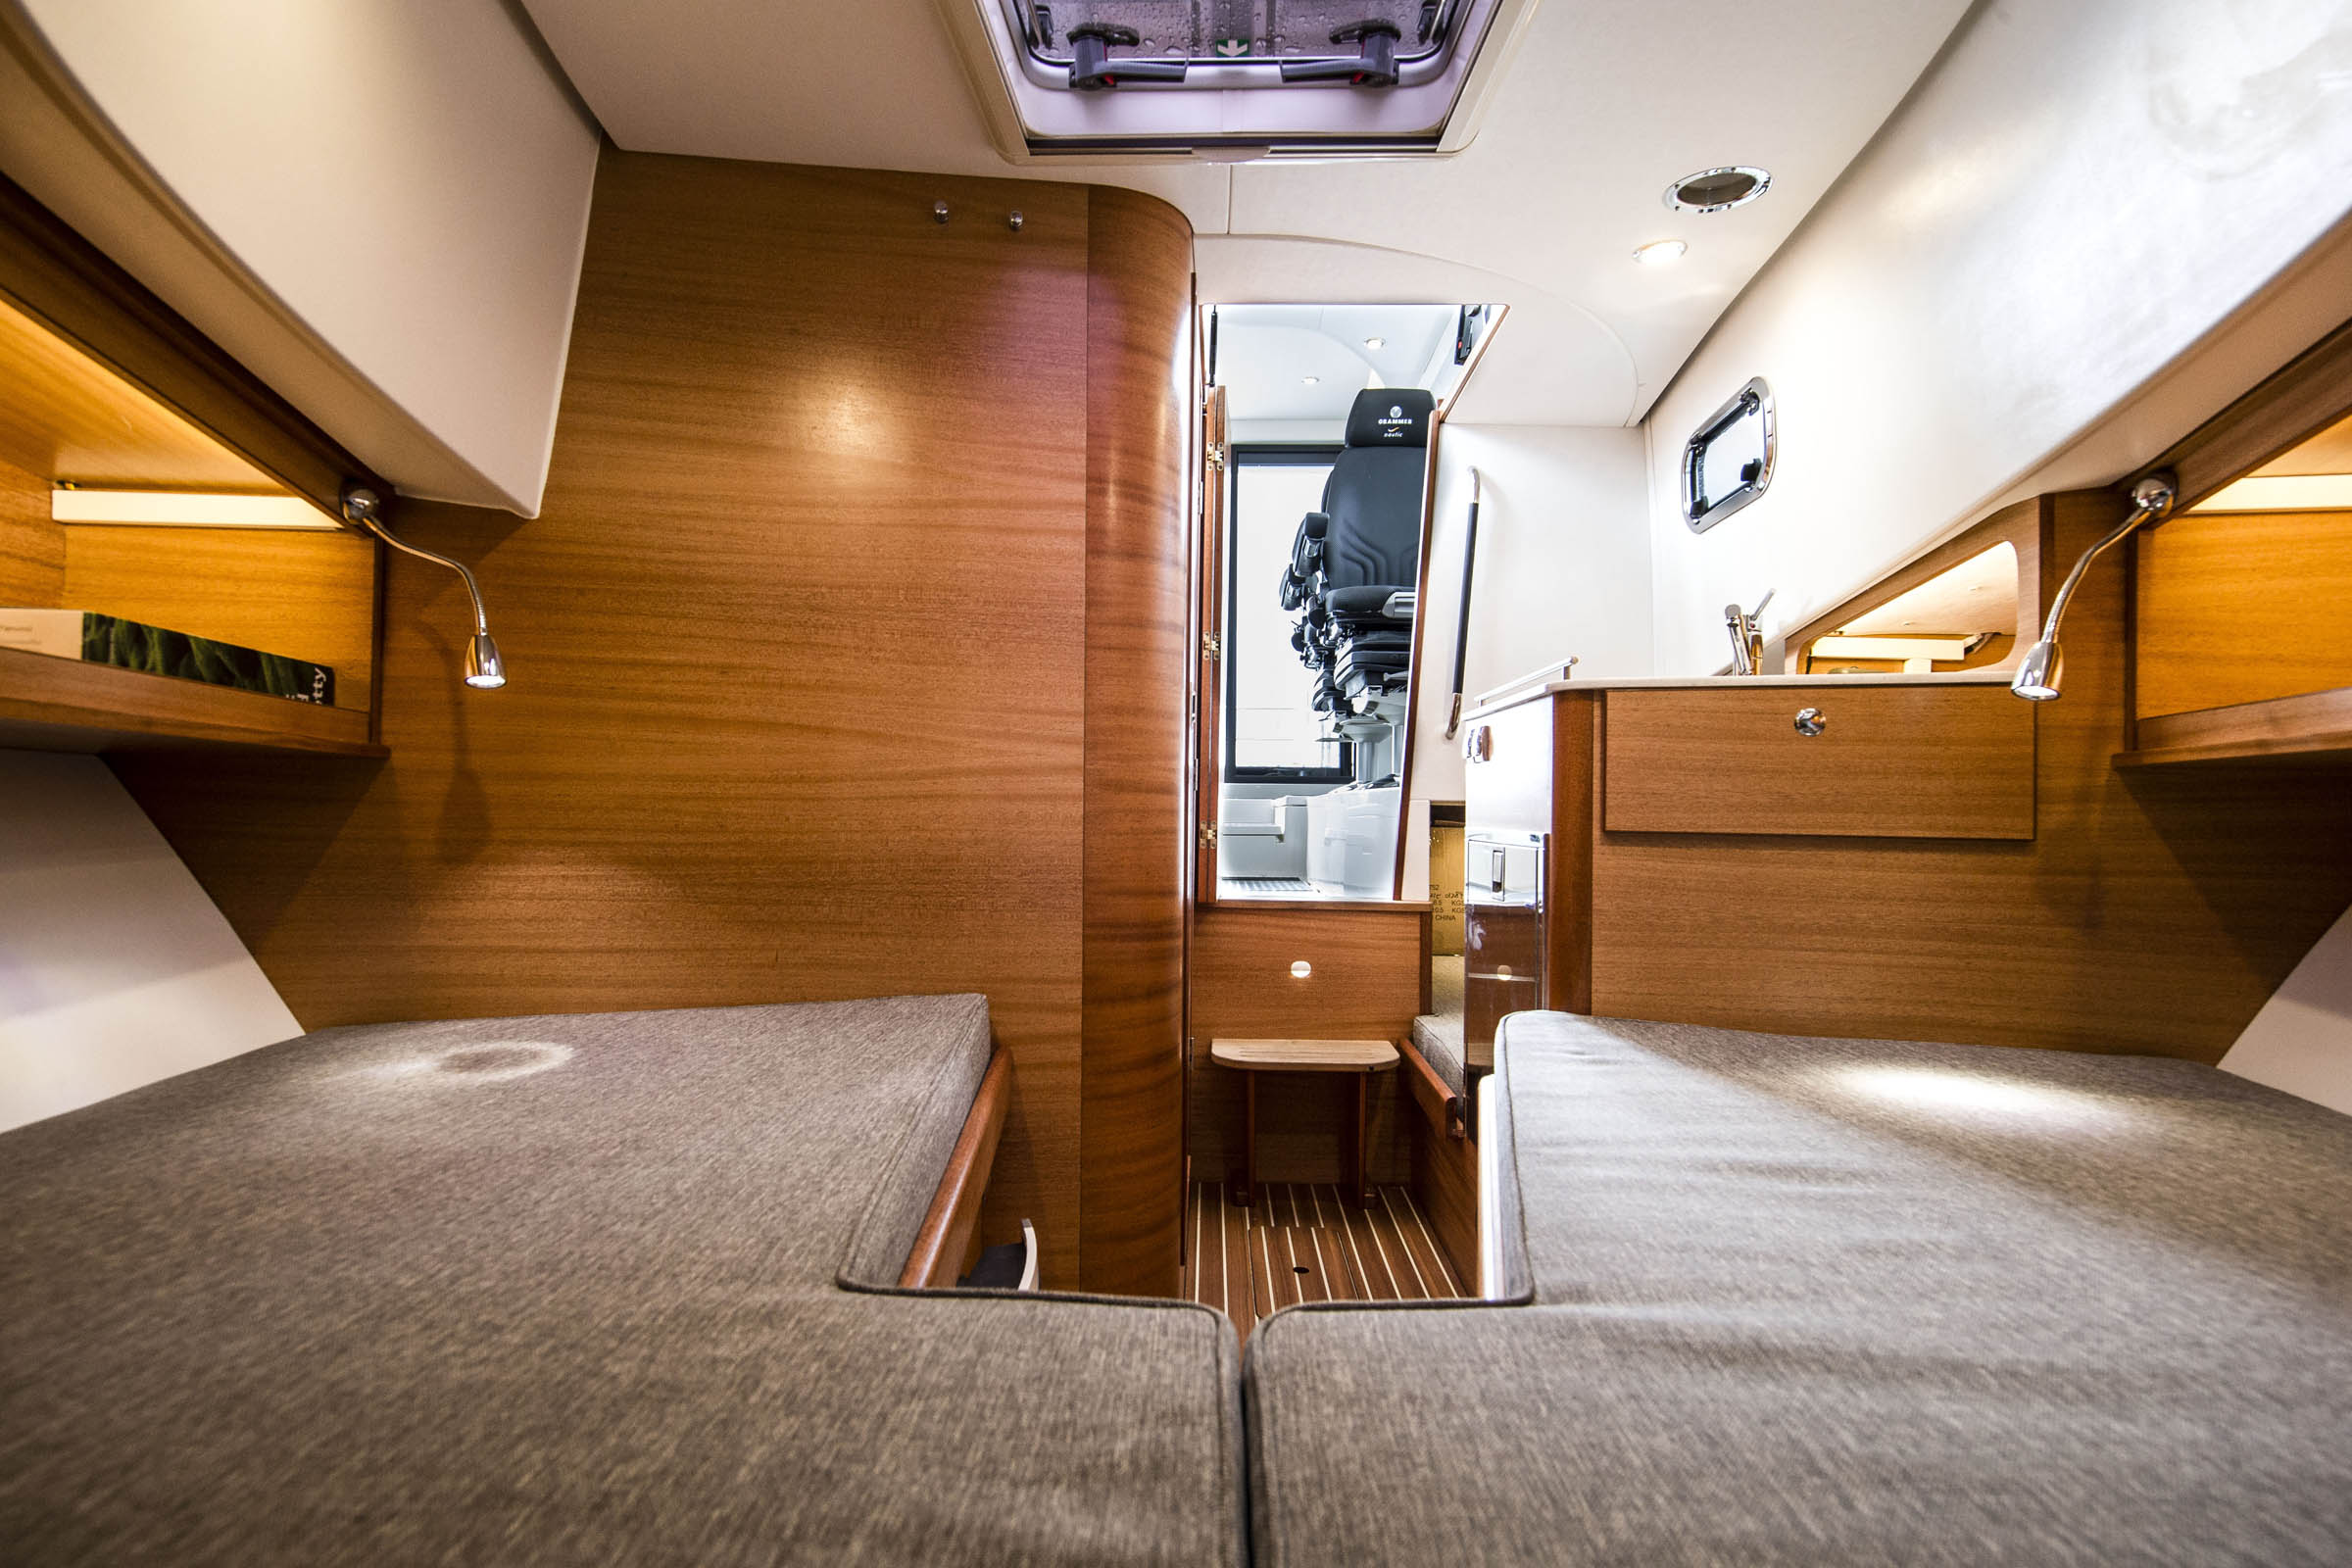 Inside a Paragon Motorboat, two beds and sofas